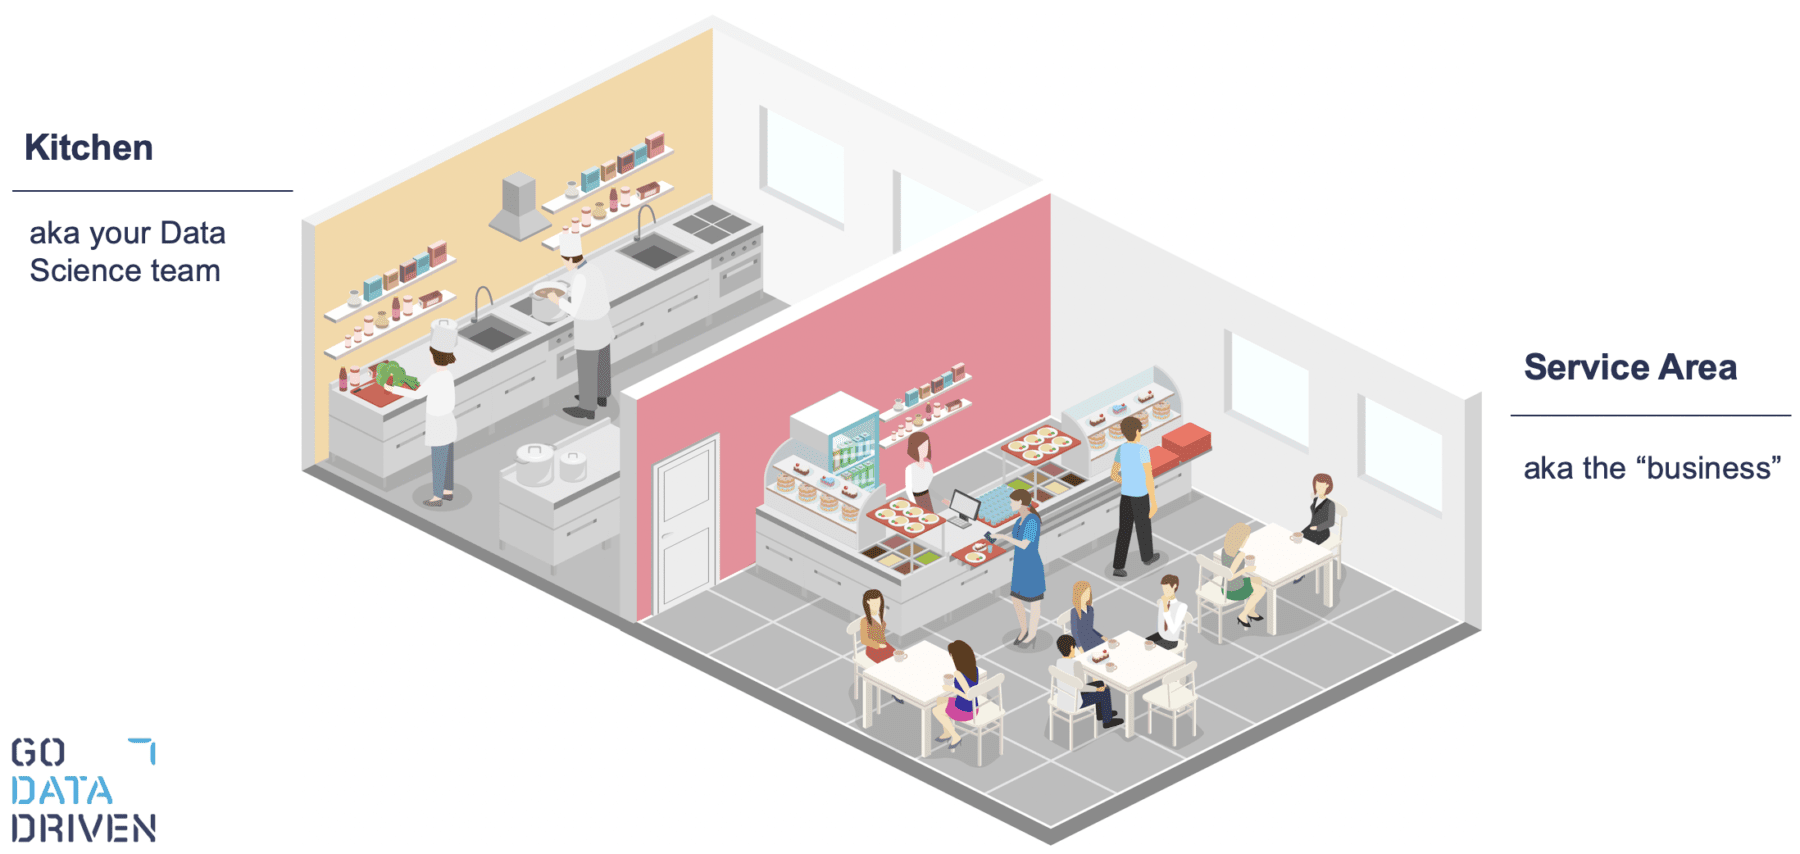 Cross section of a restaurant showing there are two parts that need to work together: the kitchen and service area.